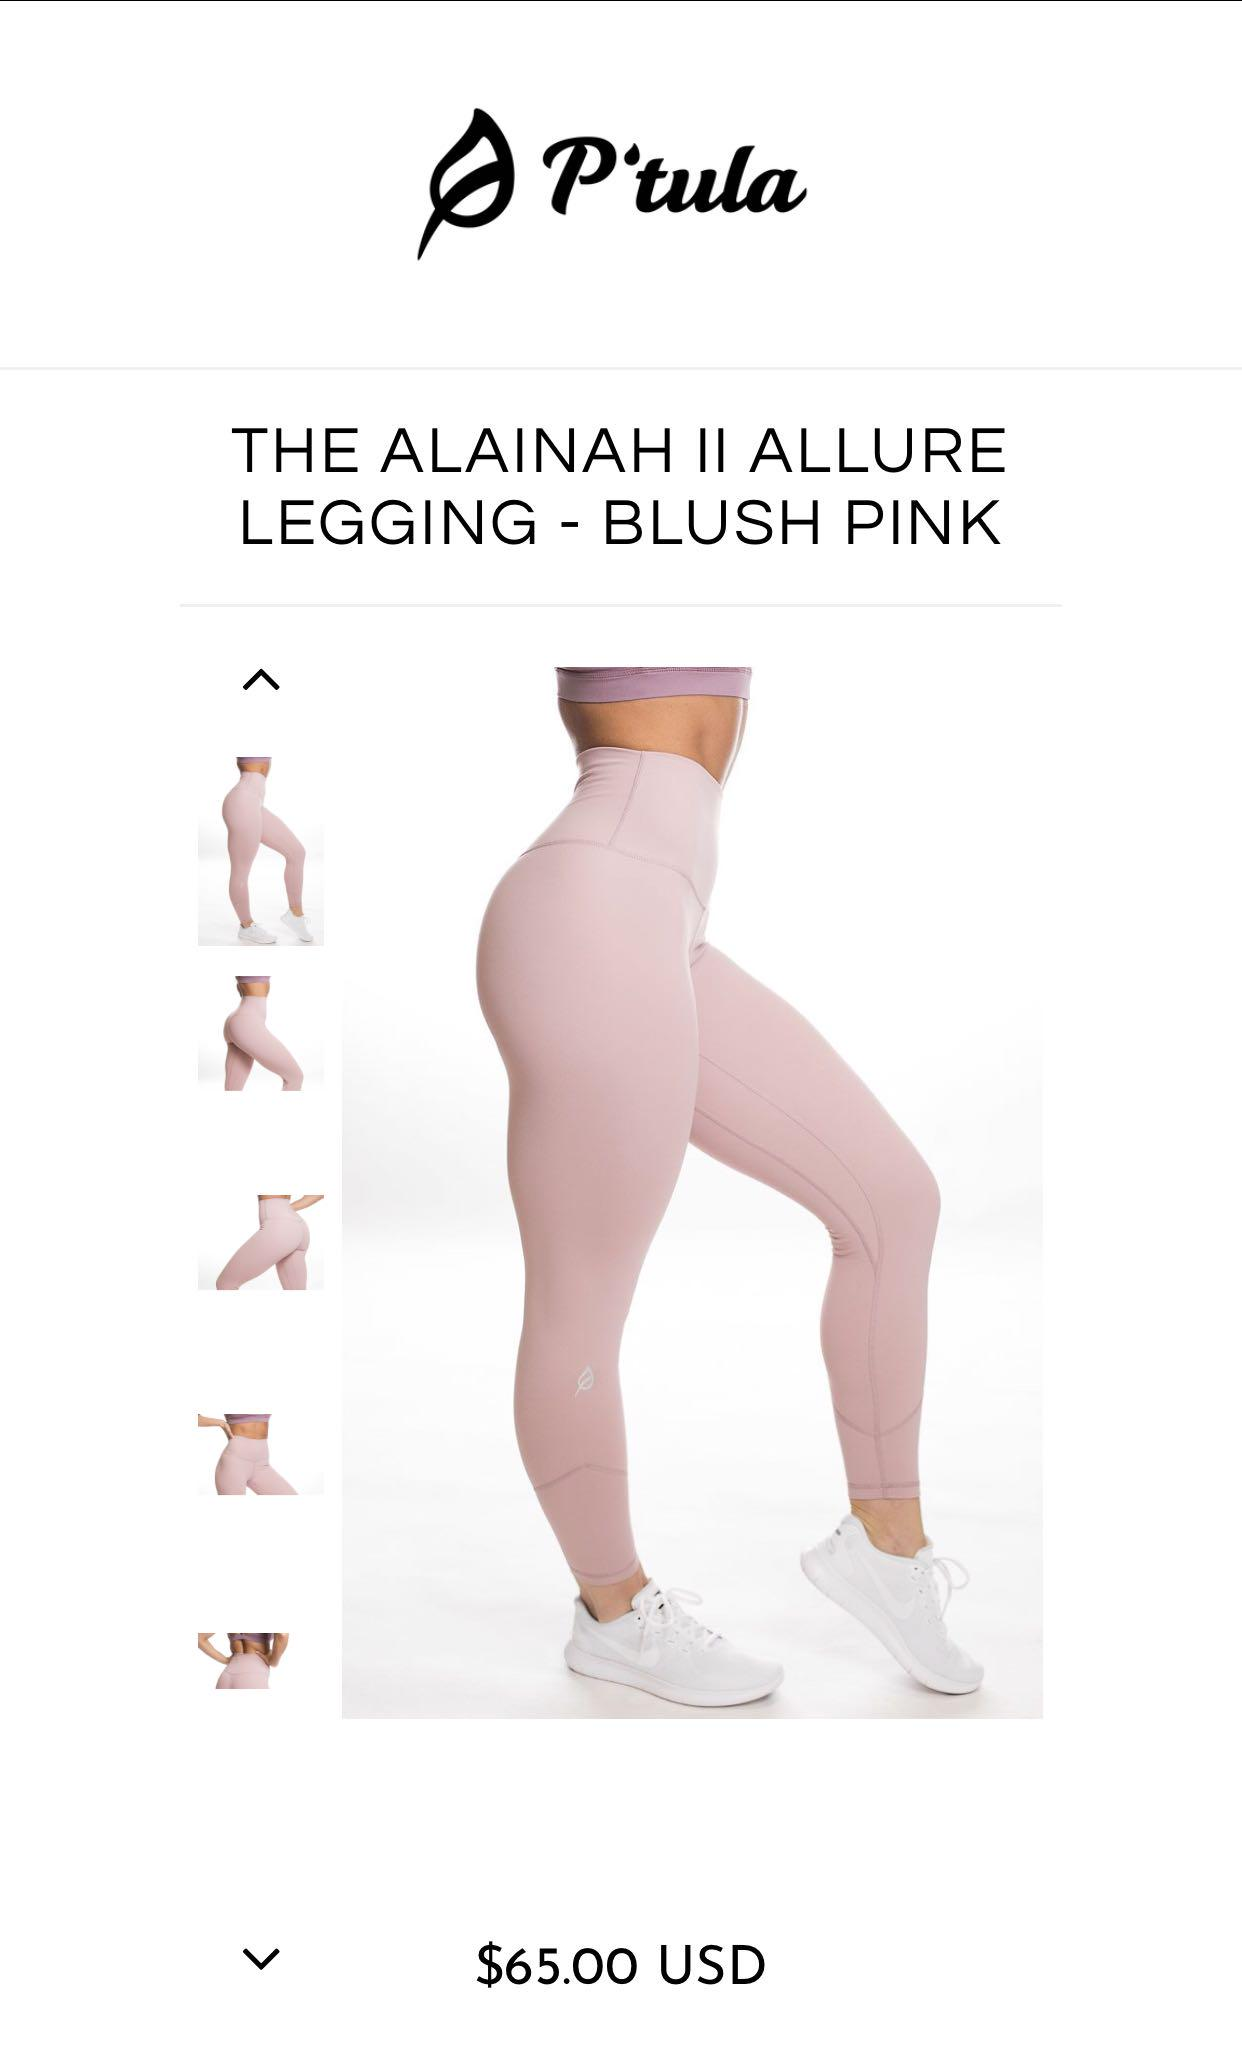 Ptula Alainah Blush Pink Leggings Sports Sports Apparel On Carousell Best hotels with military discounts in honolulu. ptula alainah blush pink leggings